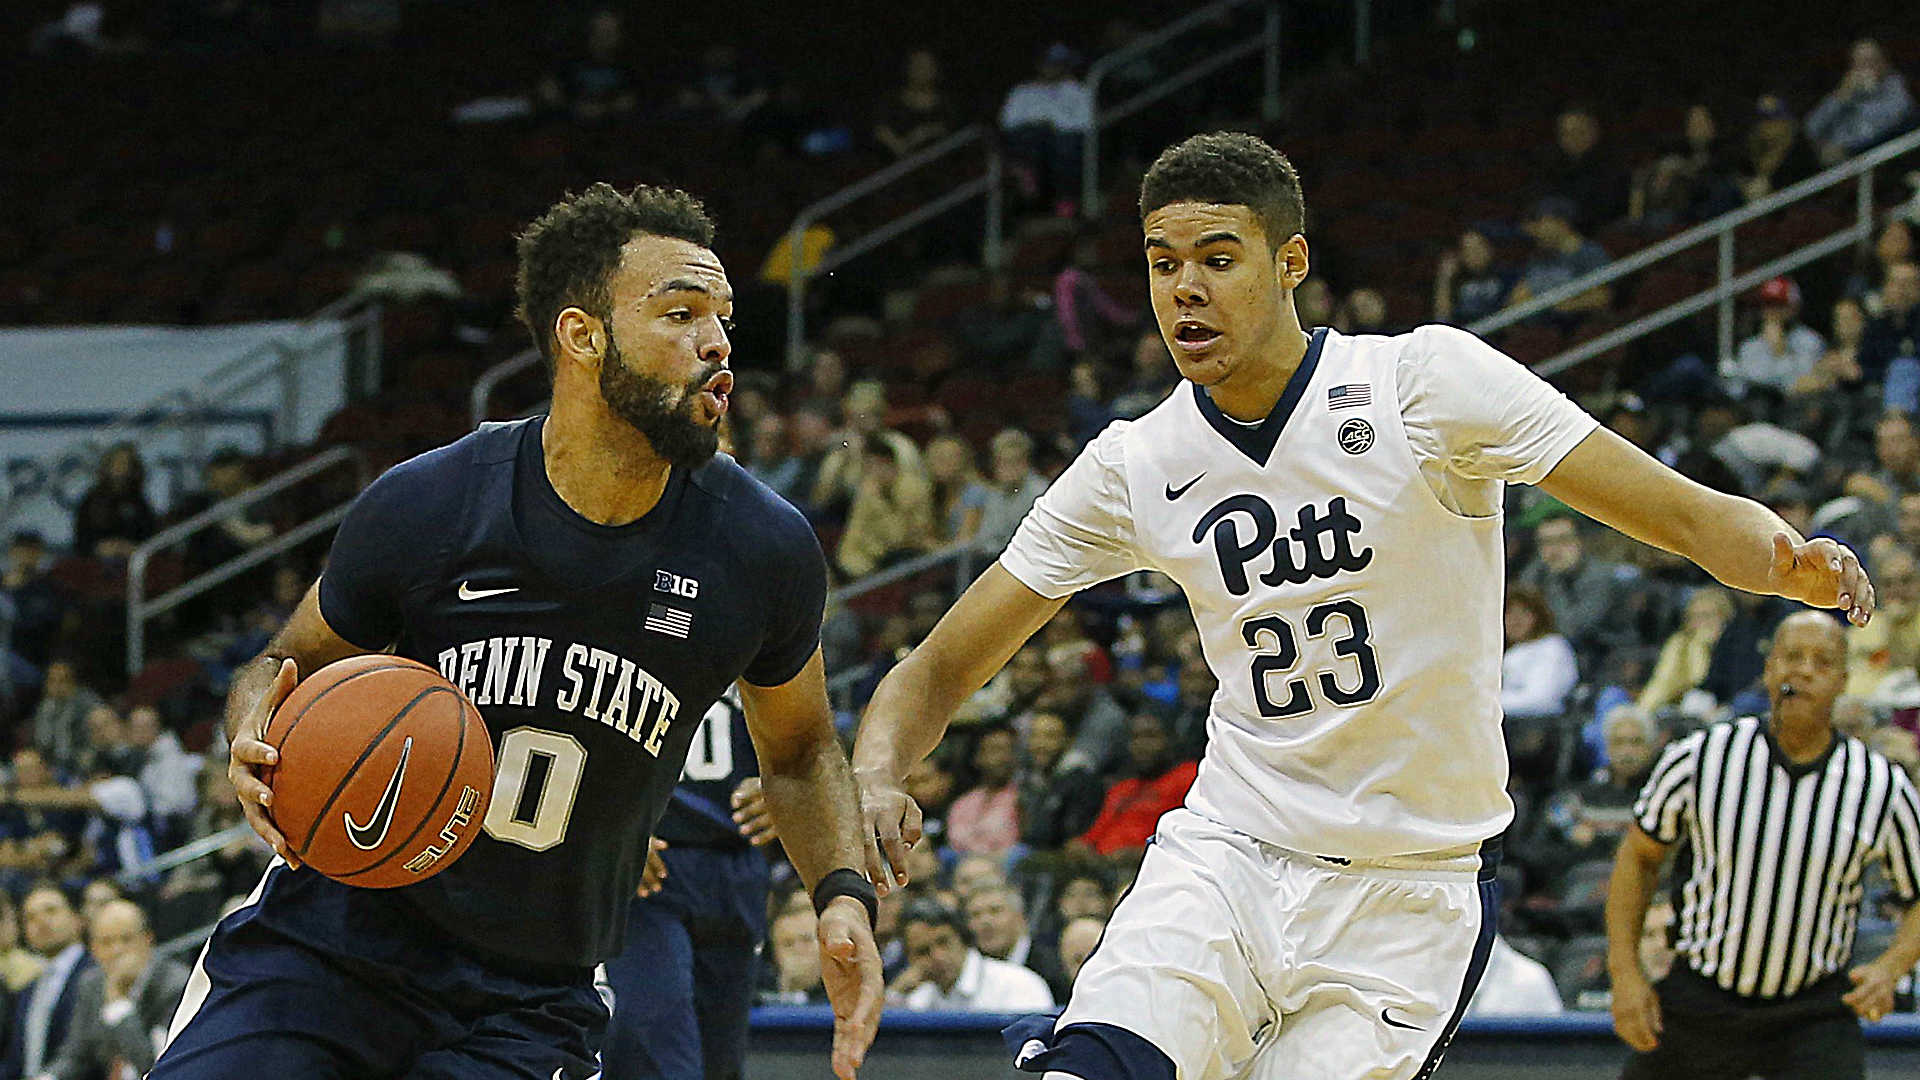 Pittsburgh, graduate transfer at odds over move to UNC